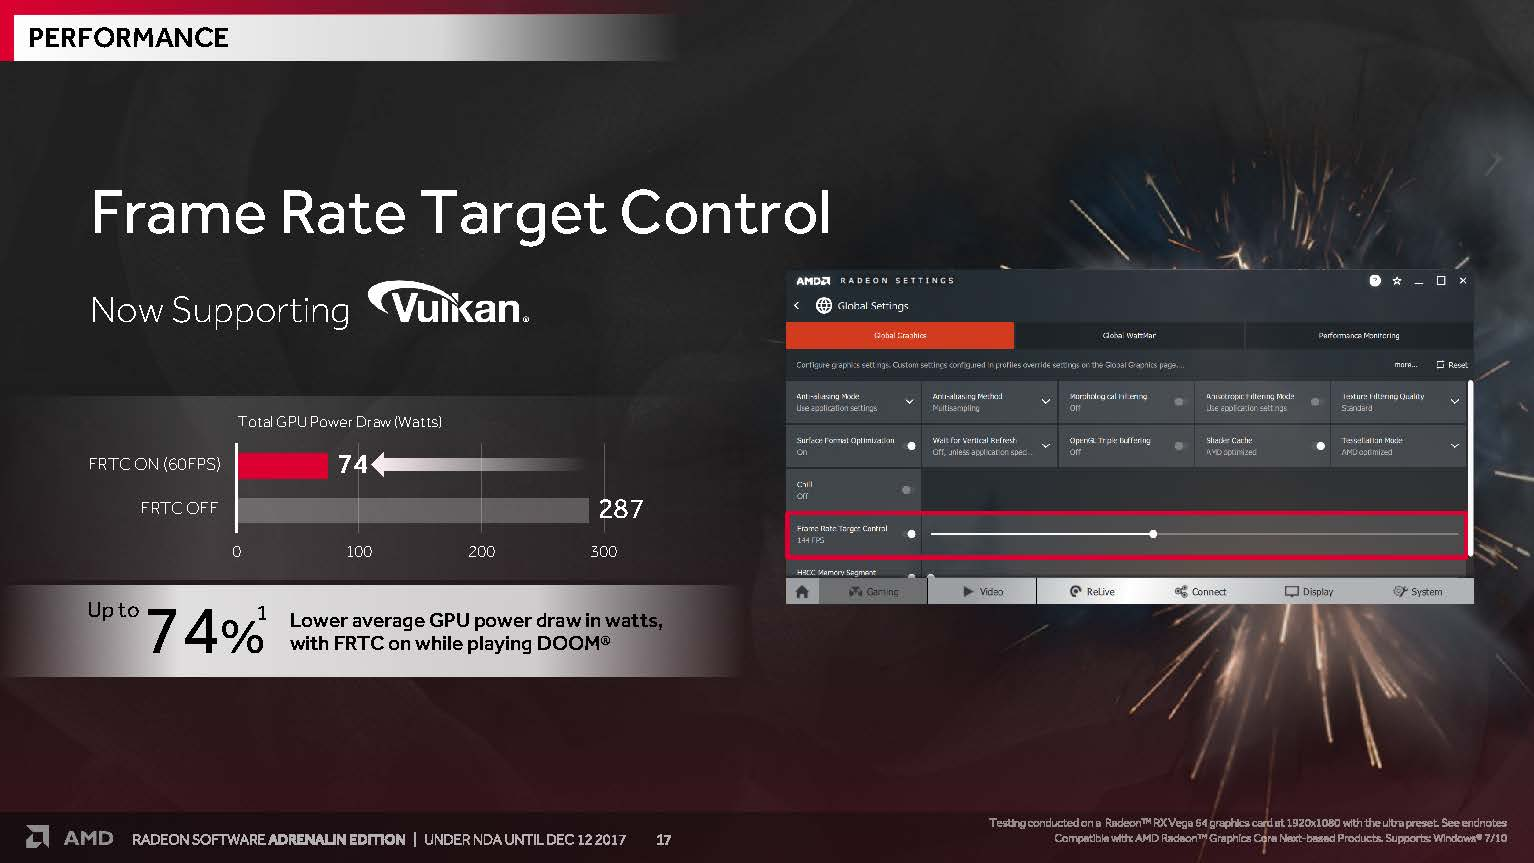 amd radeon software adrenaline edition december press deck Page 17